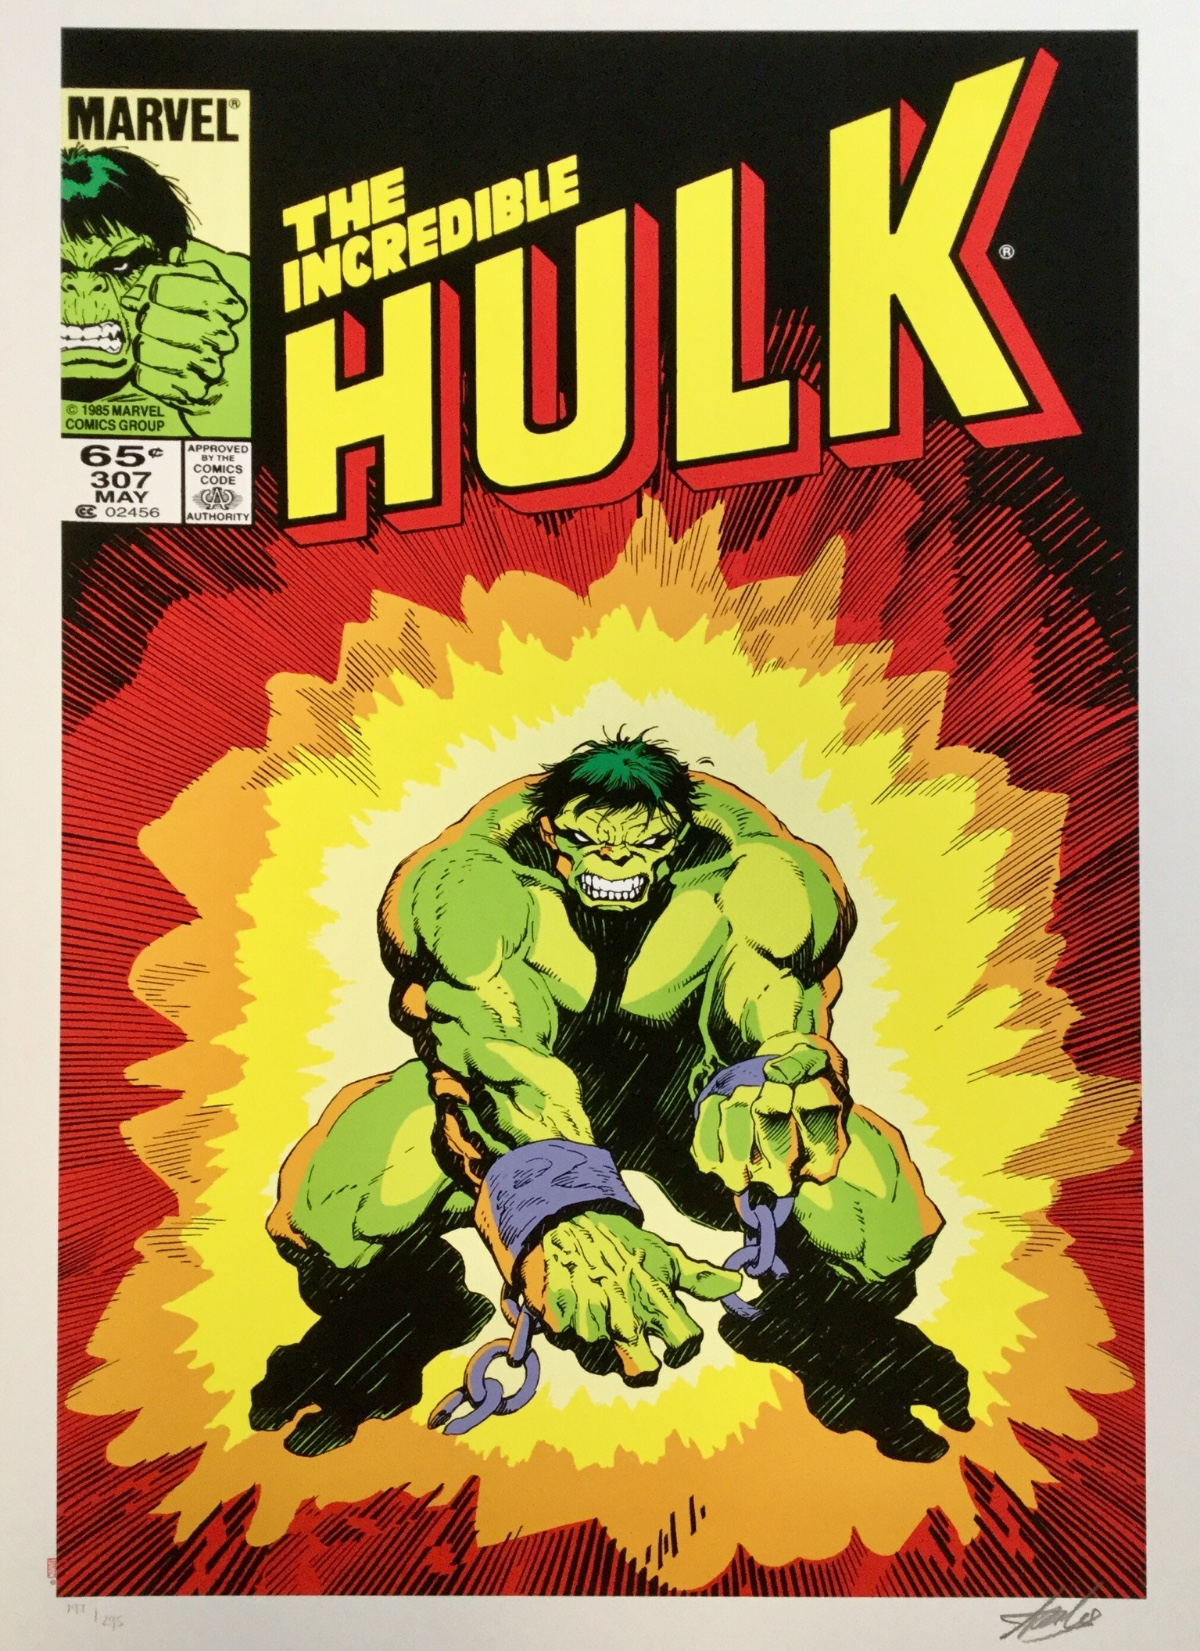 The Incredible Hulk by Marvel Comics - Stan Lee